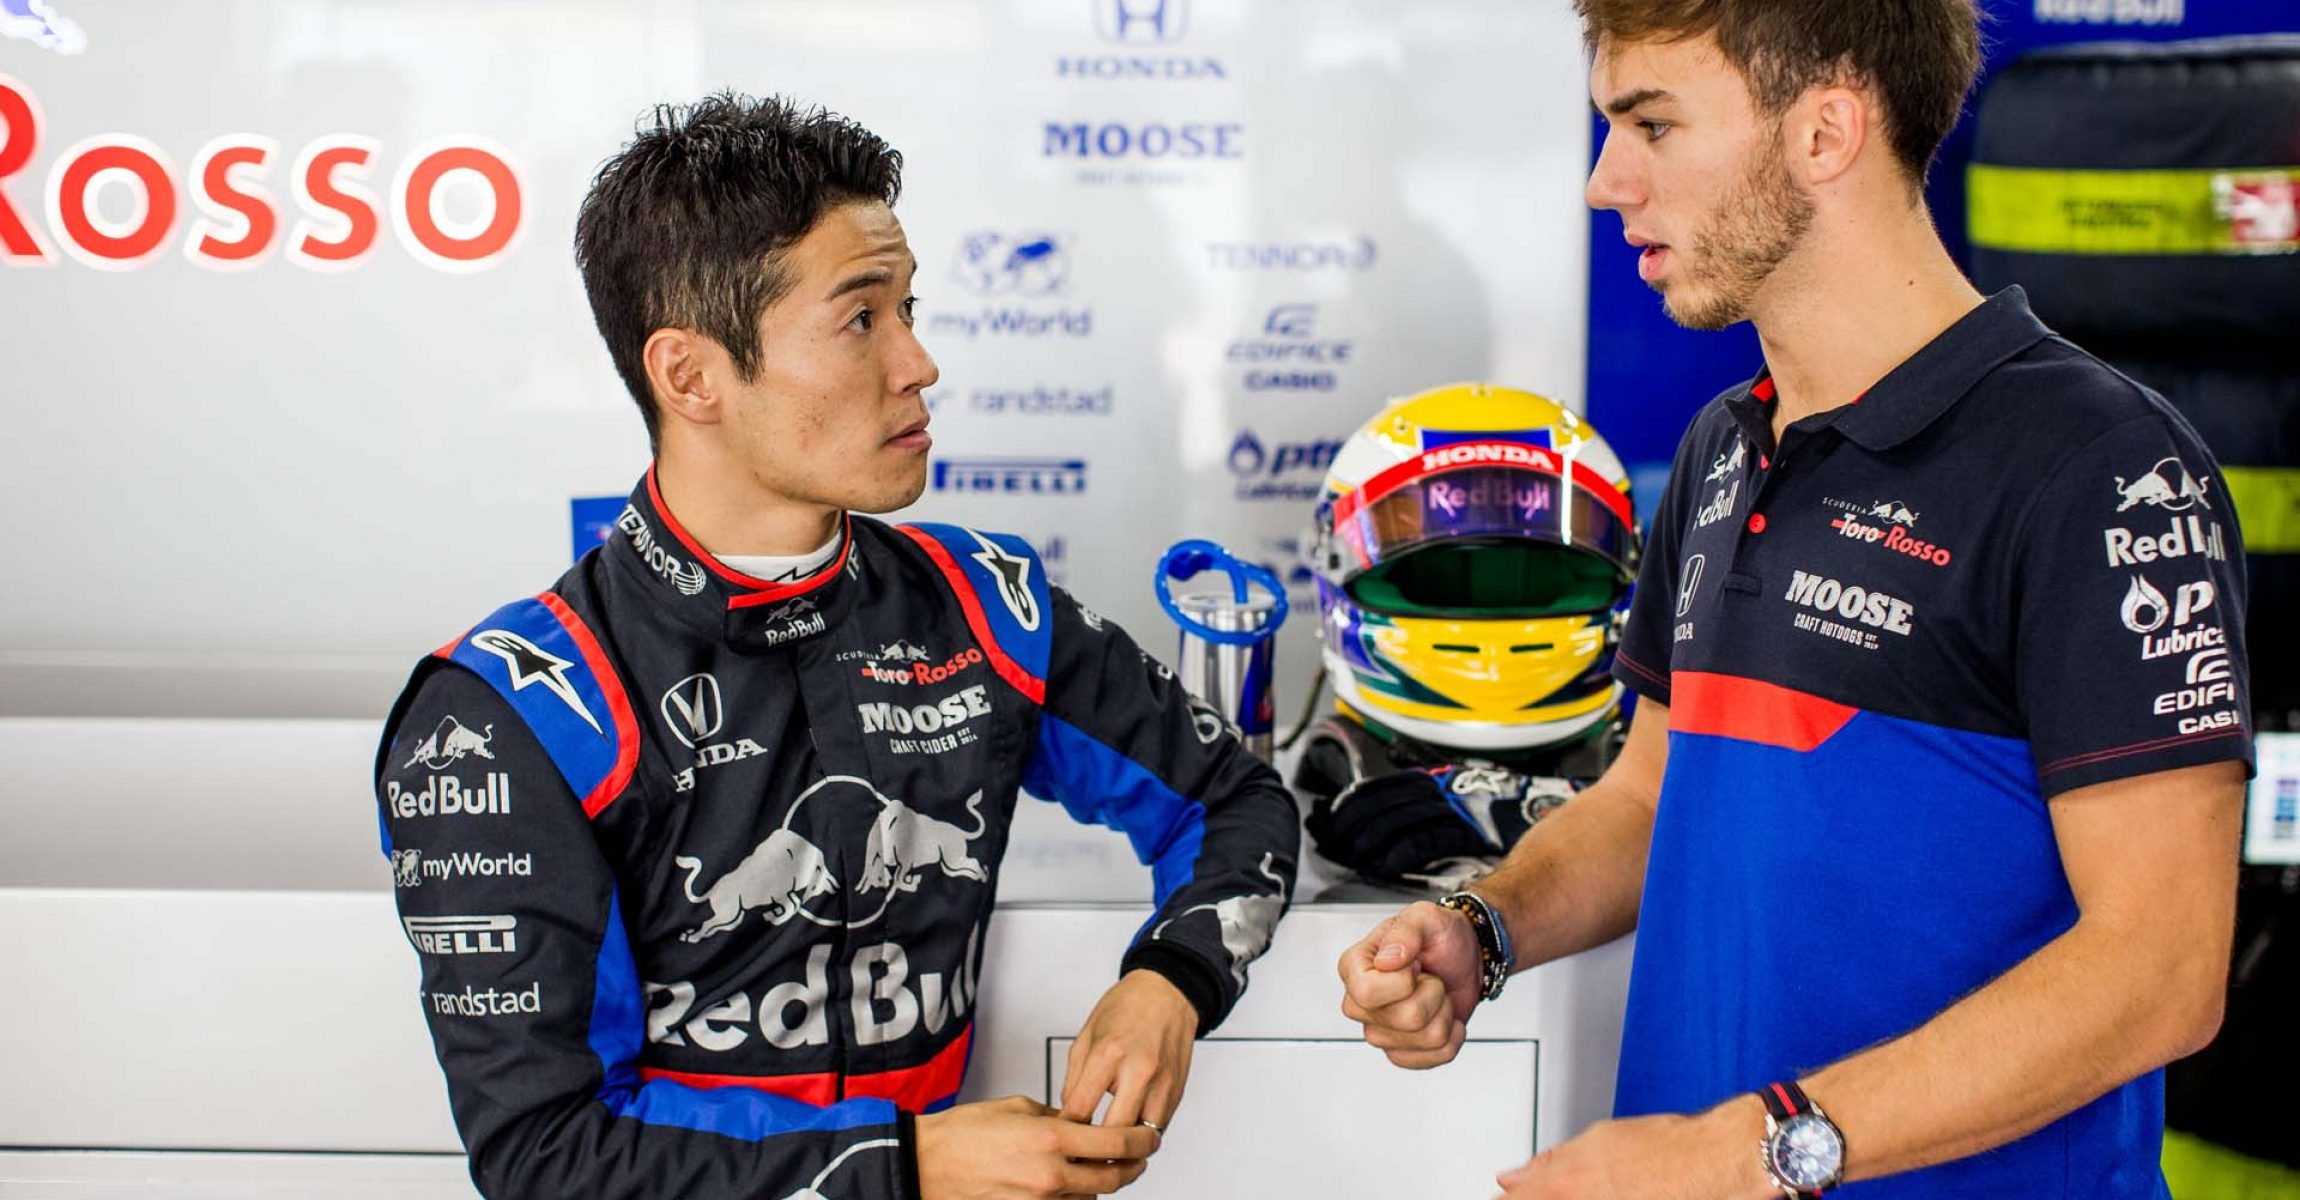 SUZUKA, JAPAN - OCTOBER 11: Naoki Yamamoto of Scuderia Toro Rosso and Japan with Pierre Gasly of Scuderia Toro Rosso and France during practice for the F1 Grand Prix of Japan at Suzuka Circuit on October 11, 2019 in Suzuka, Japan. (Photo by Peter Fox/Getty Images) // Getty Images / Red Bull Content Pool  // AP-21UA4G73S2111 // Usage for editorial use only //